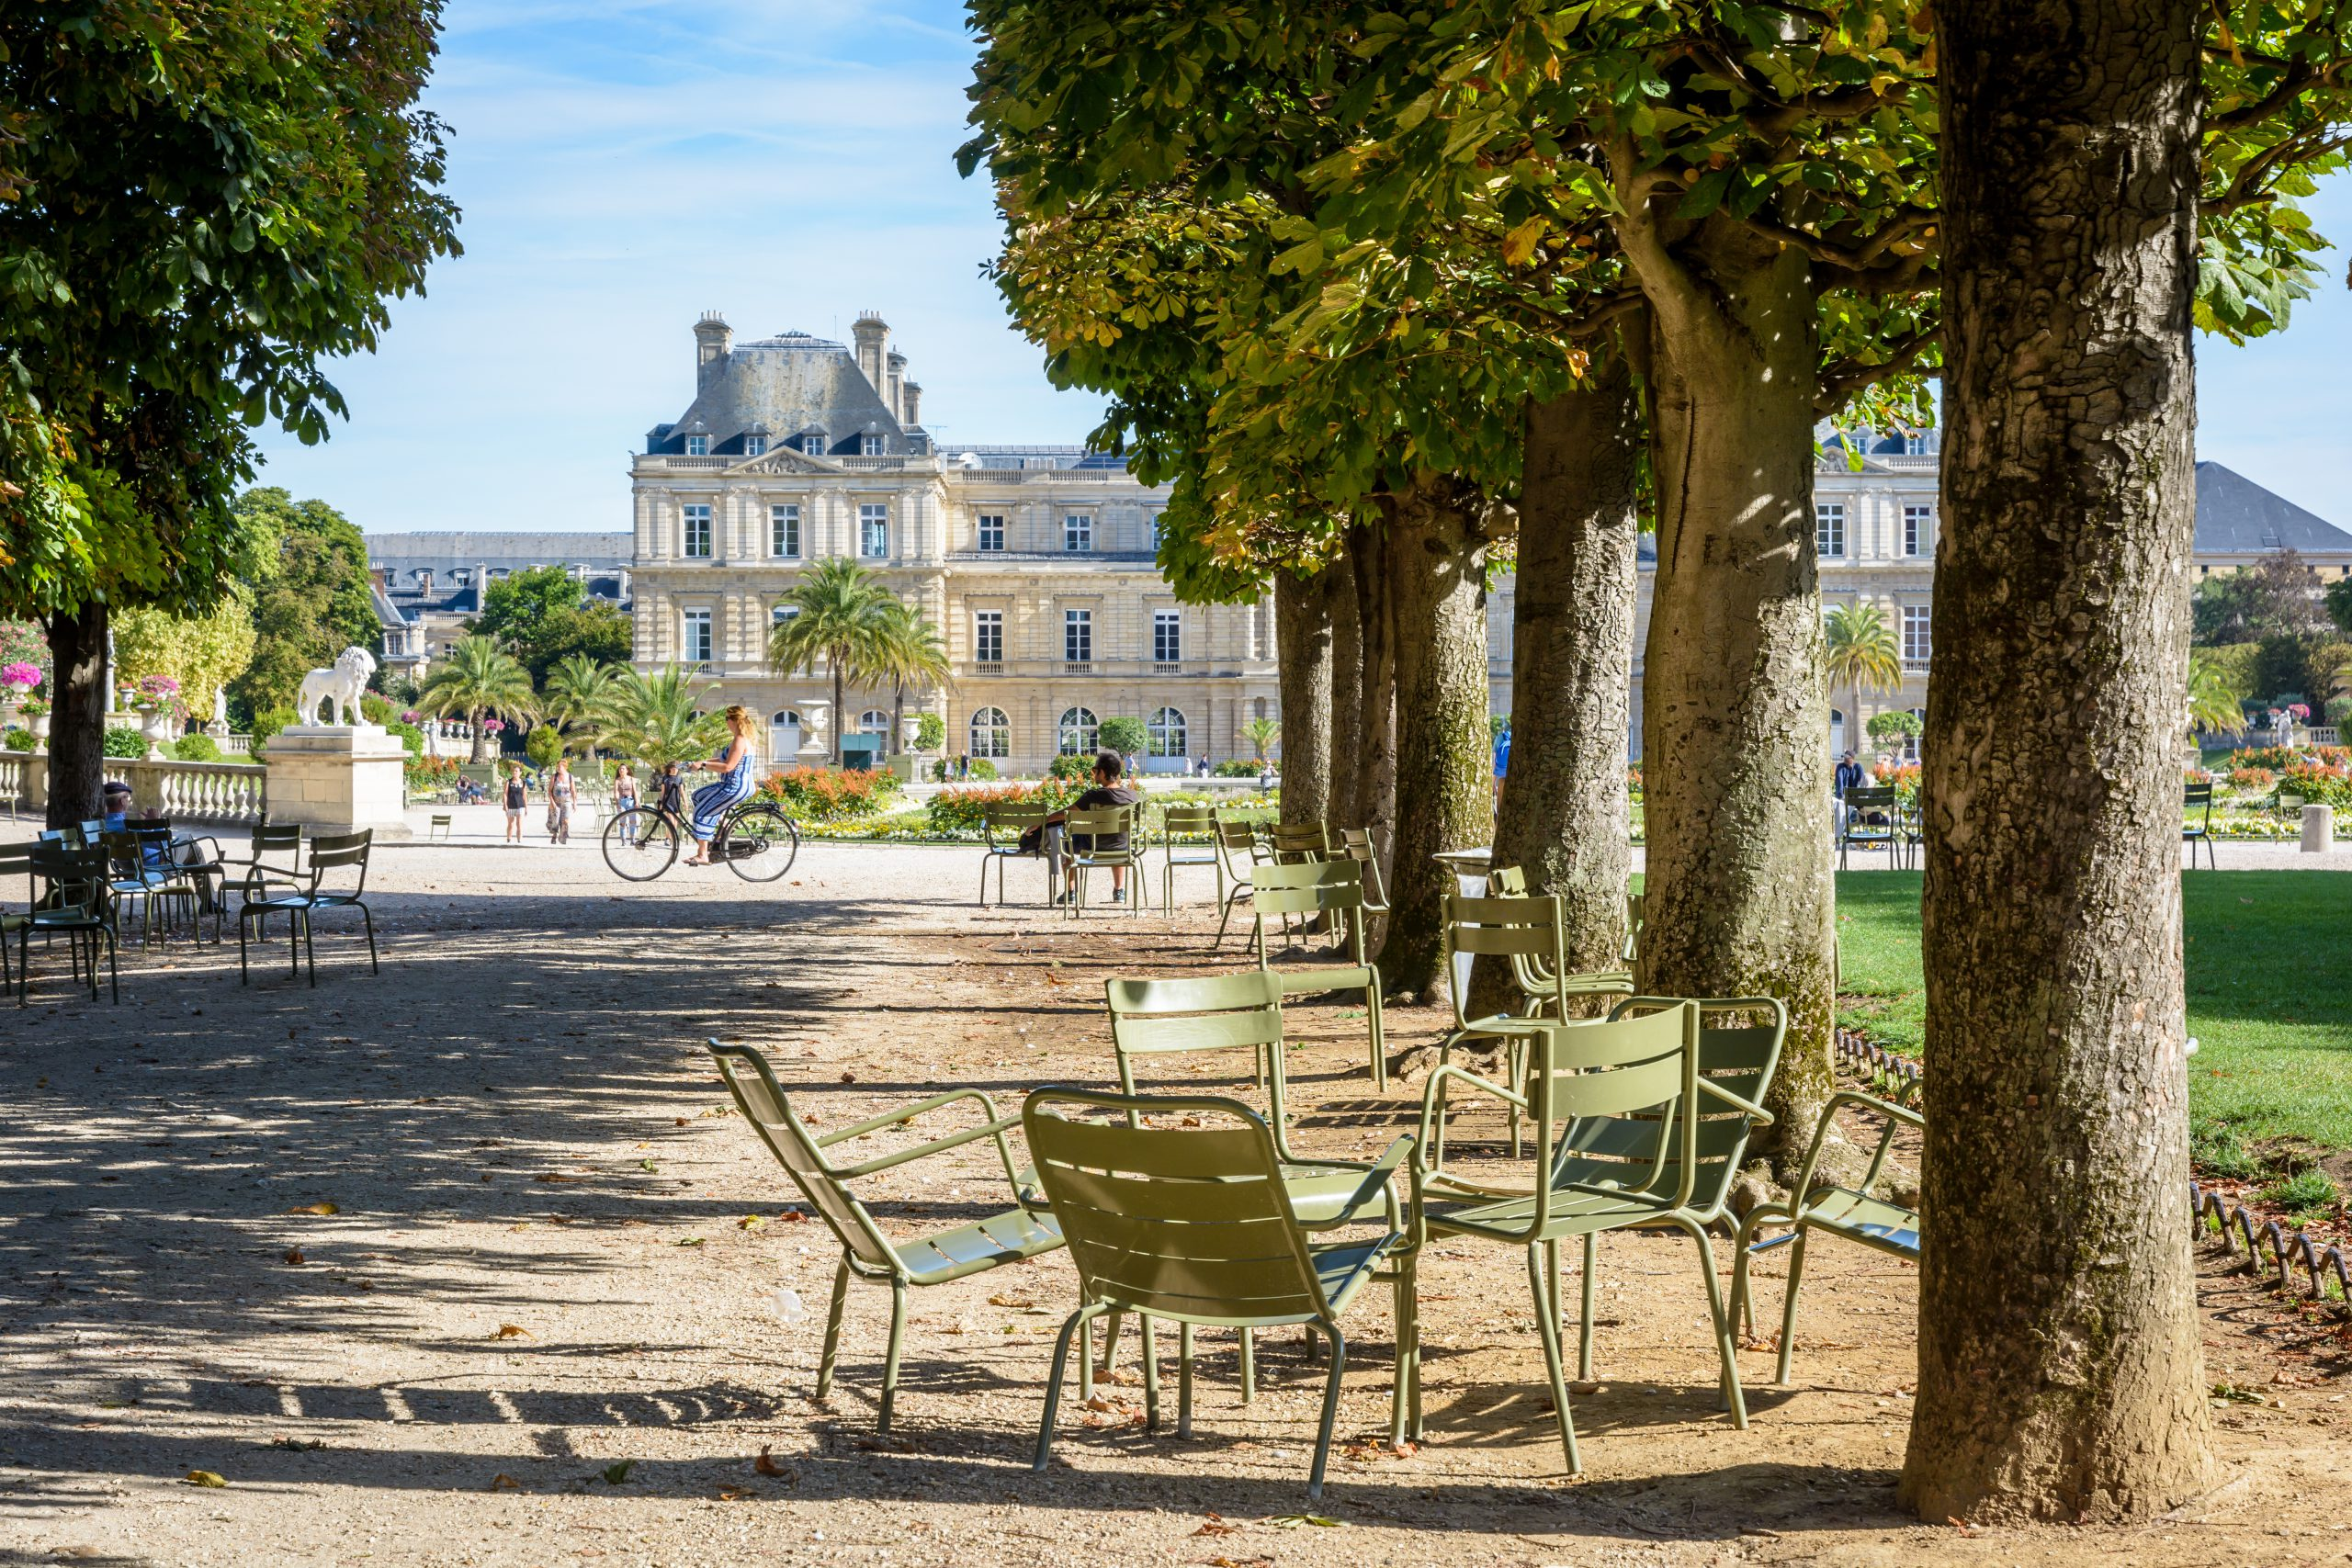 11 Local Things Not to Miss When Visiting Paris